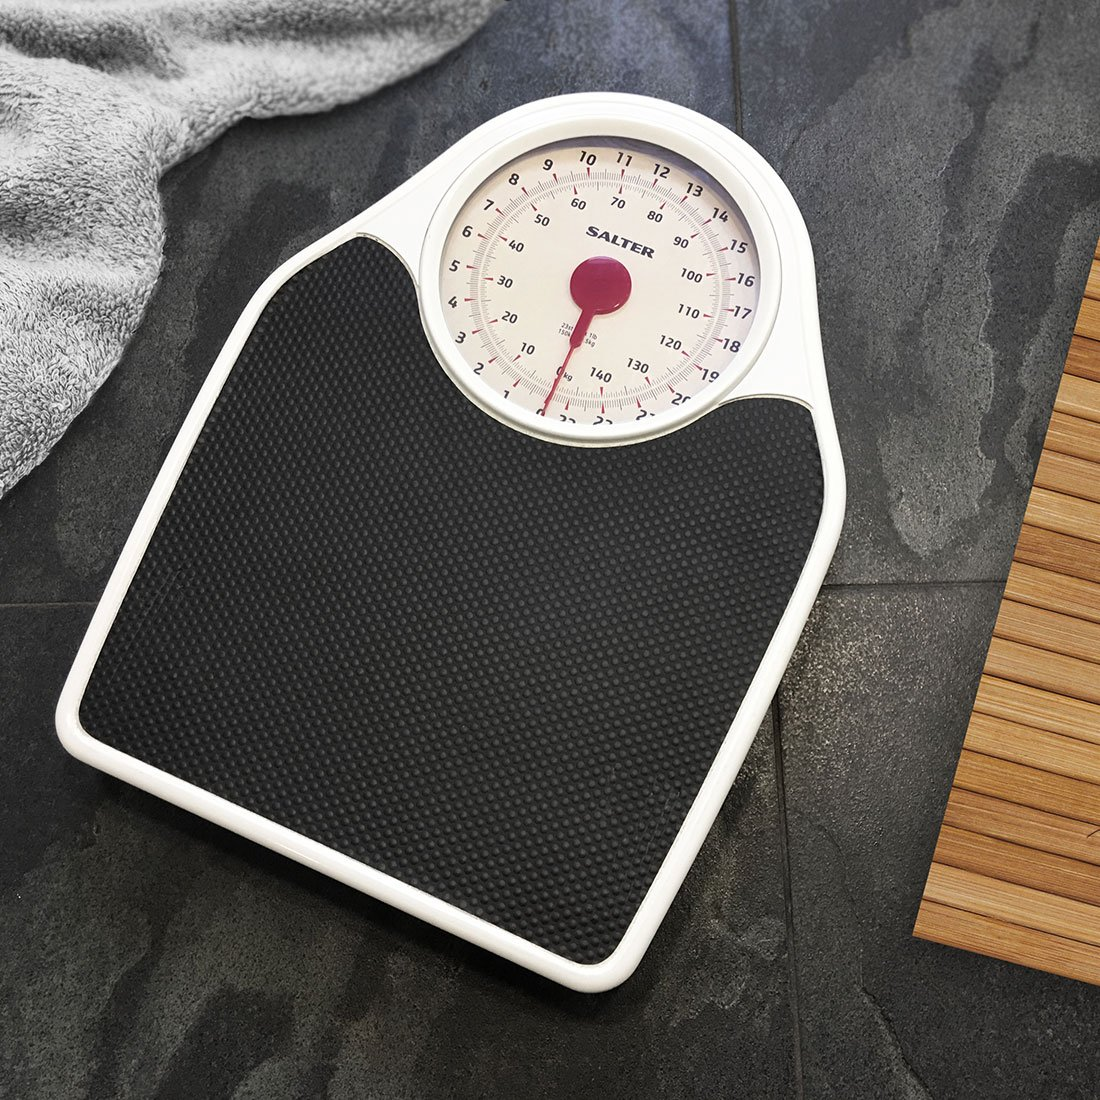 Retro bathroom scales - Salter Doctor Style Mechanical Bathroom Scales Retro White Black Accurate Weighing Easy To Read Analogue Dial Sturdy Metal Platform Weigh In St Lbs